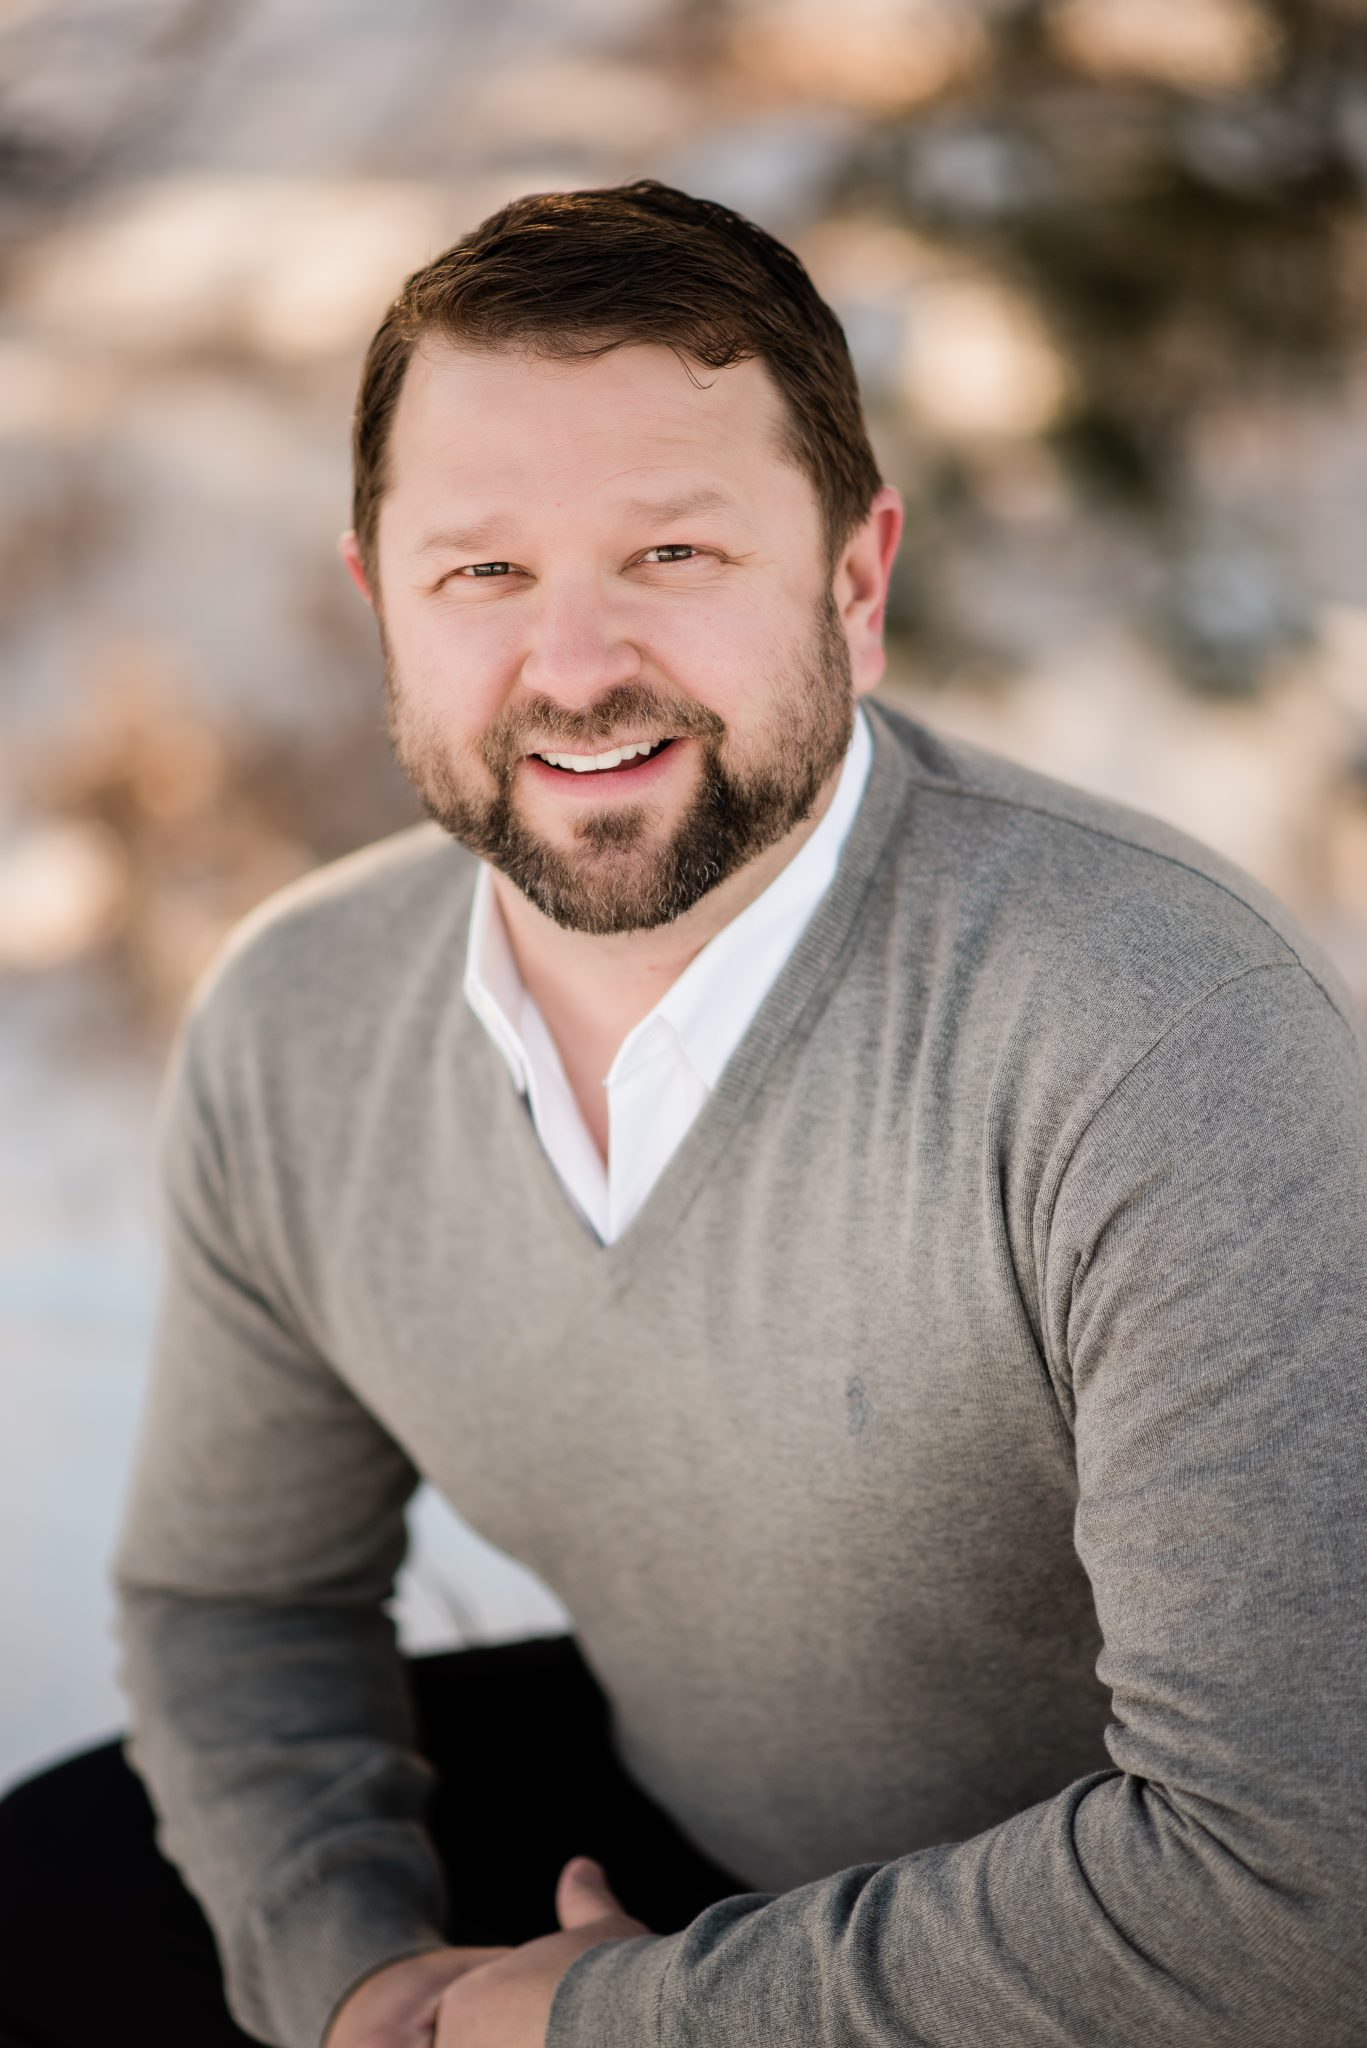 Dr. Matthew Lake is a family dentist in Sterling Ranch, Colorado.